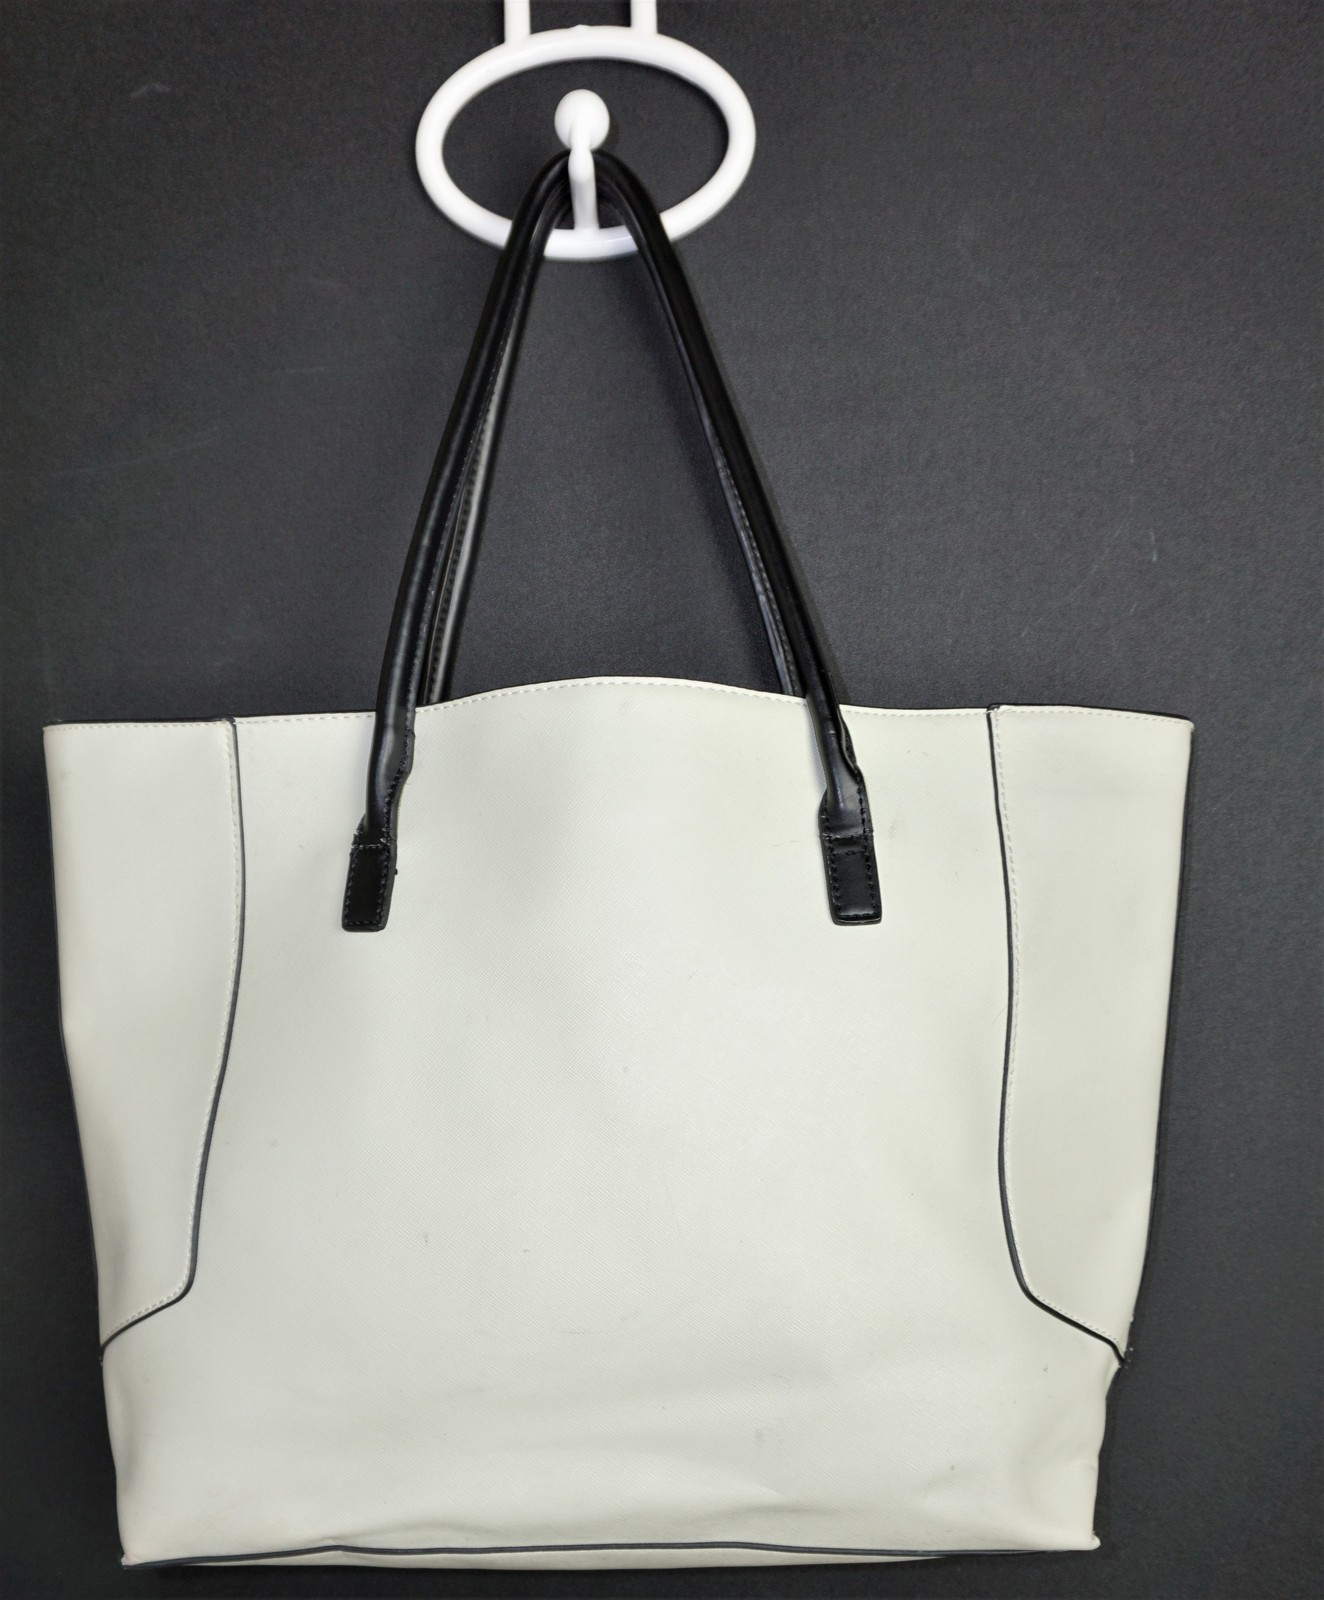 cd584bd32180 Aldo Cream with Navy Accents Large Faux Leather Purse Tote Shopper